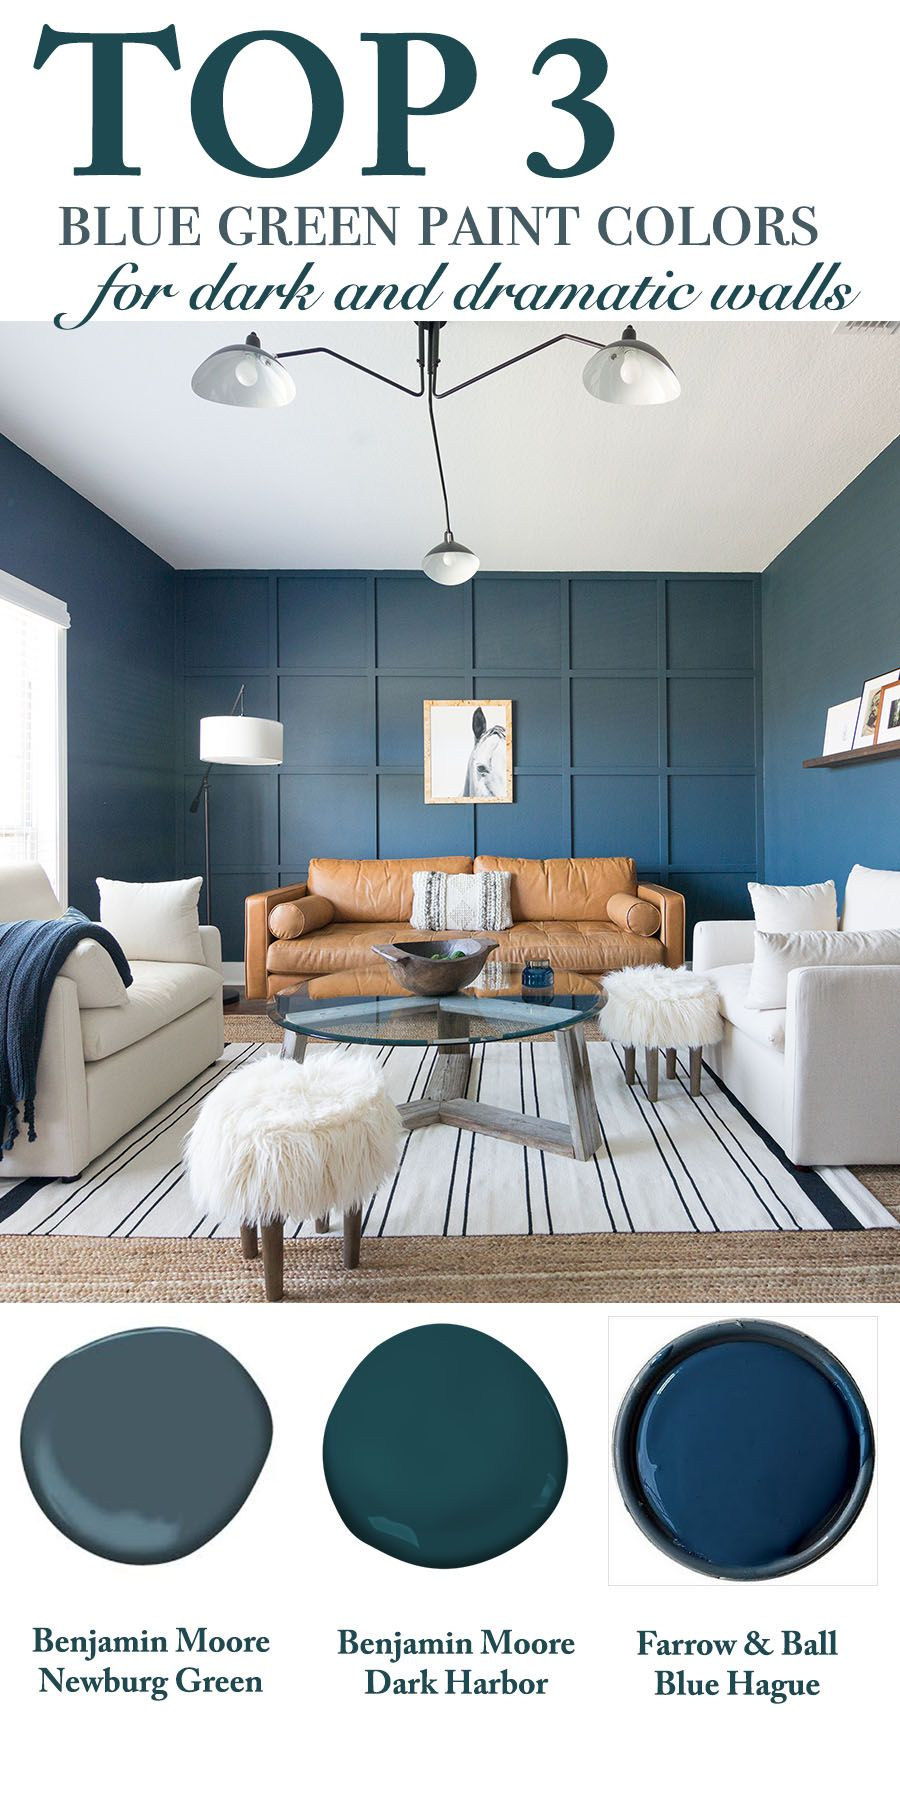 Top 3 Blue Green Paint Colors For Dark And Dramatic Walls Blue Green Bedrooms Green Wall Color Paint Colors For Living Room